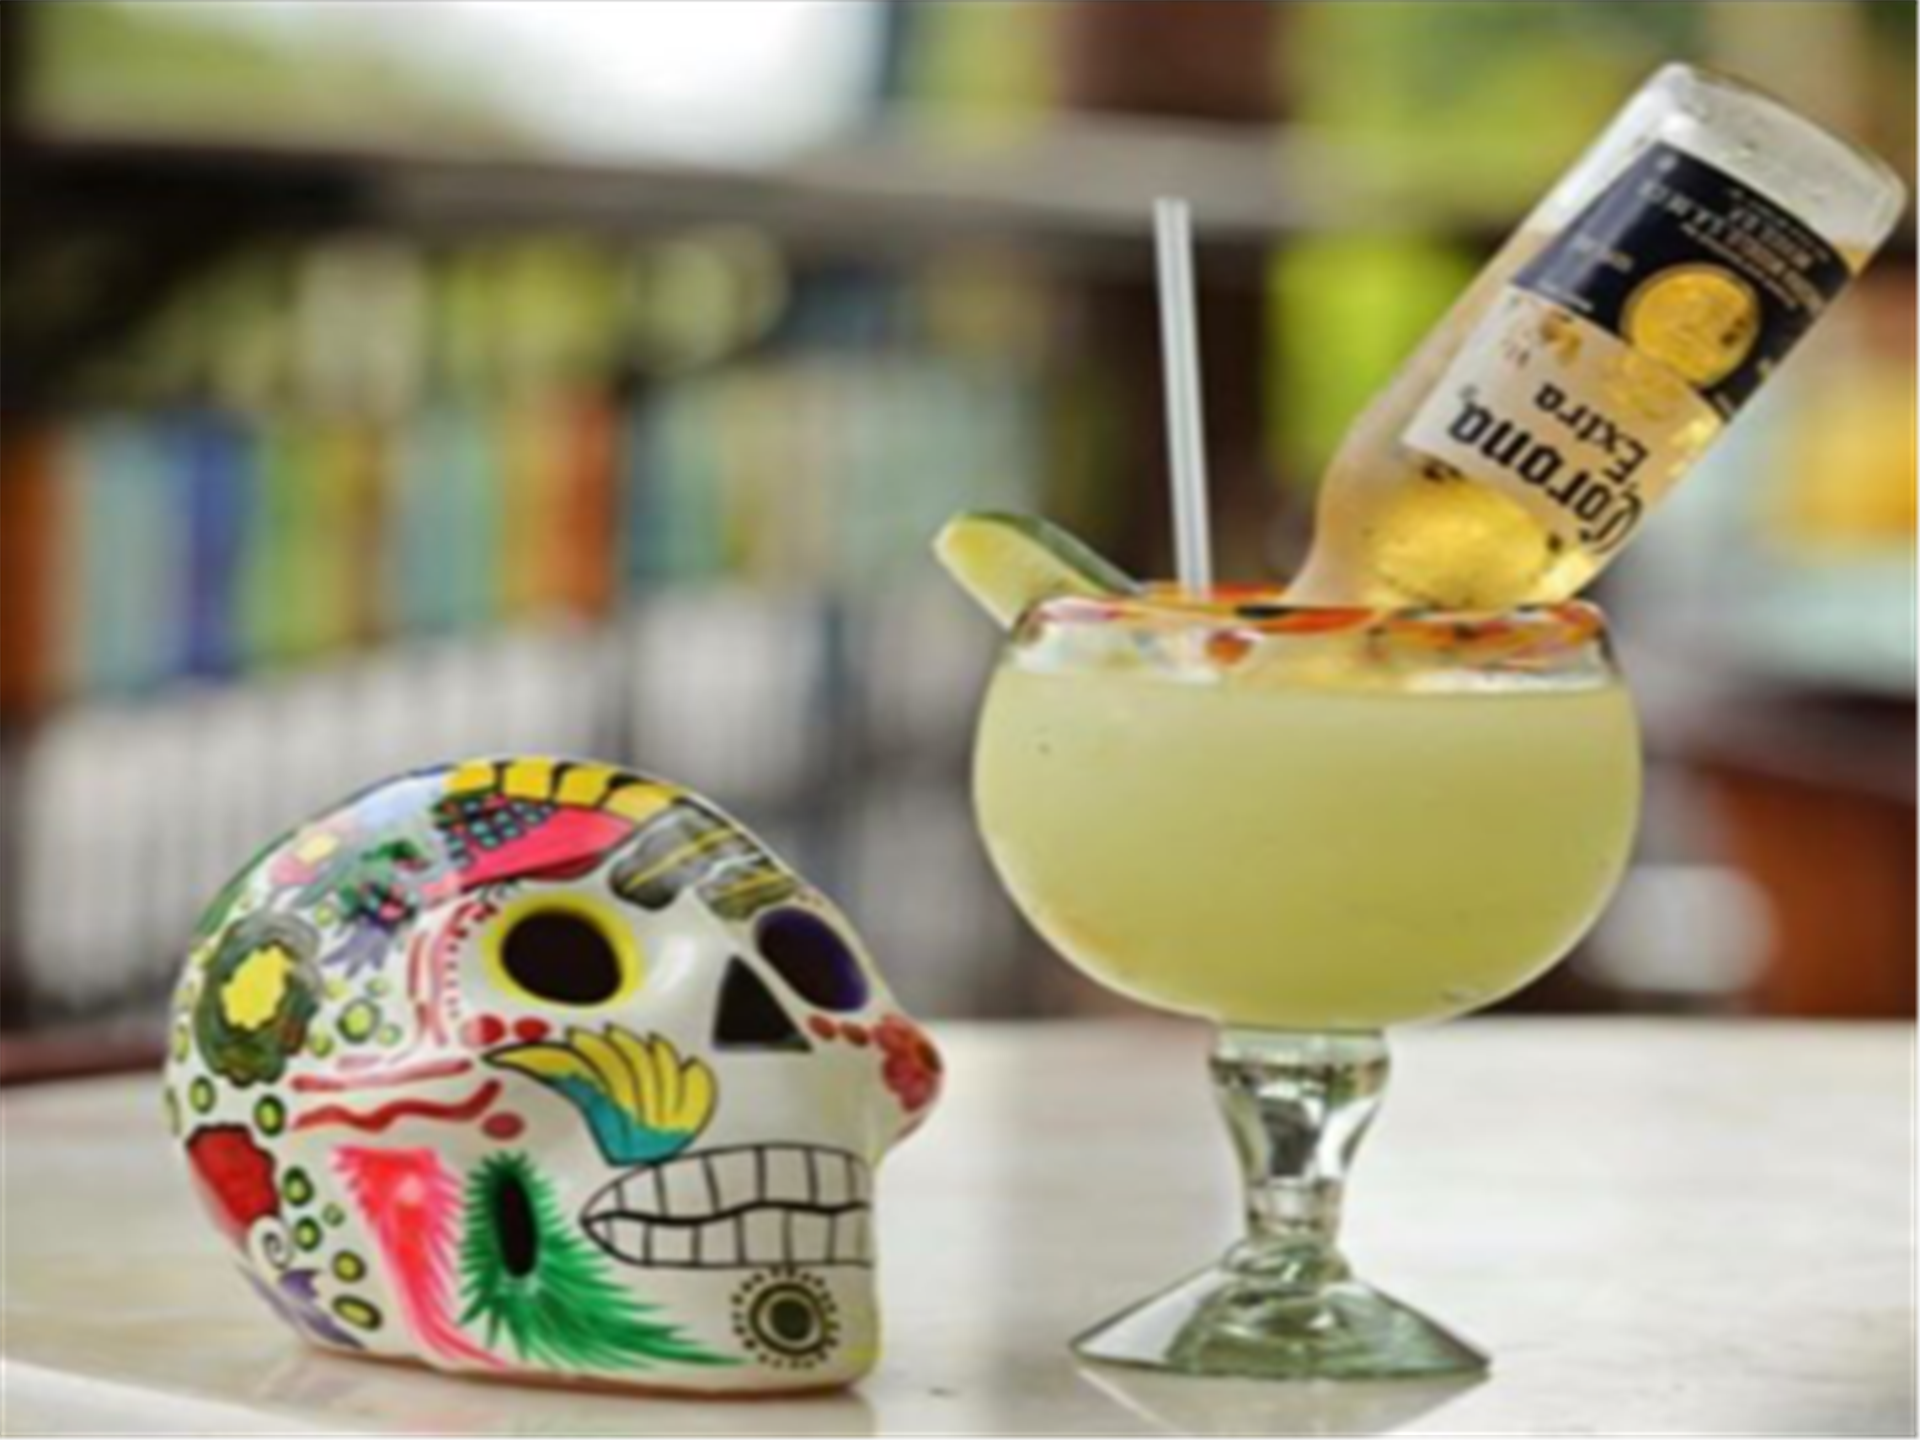 Margarona on a table next to a sugar skull.